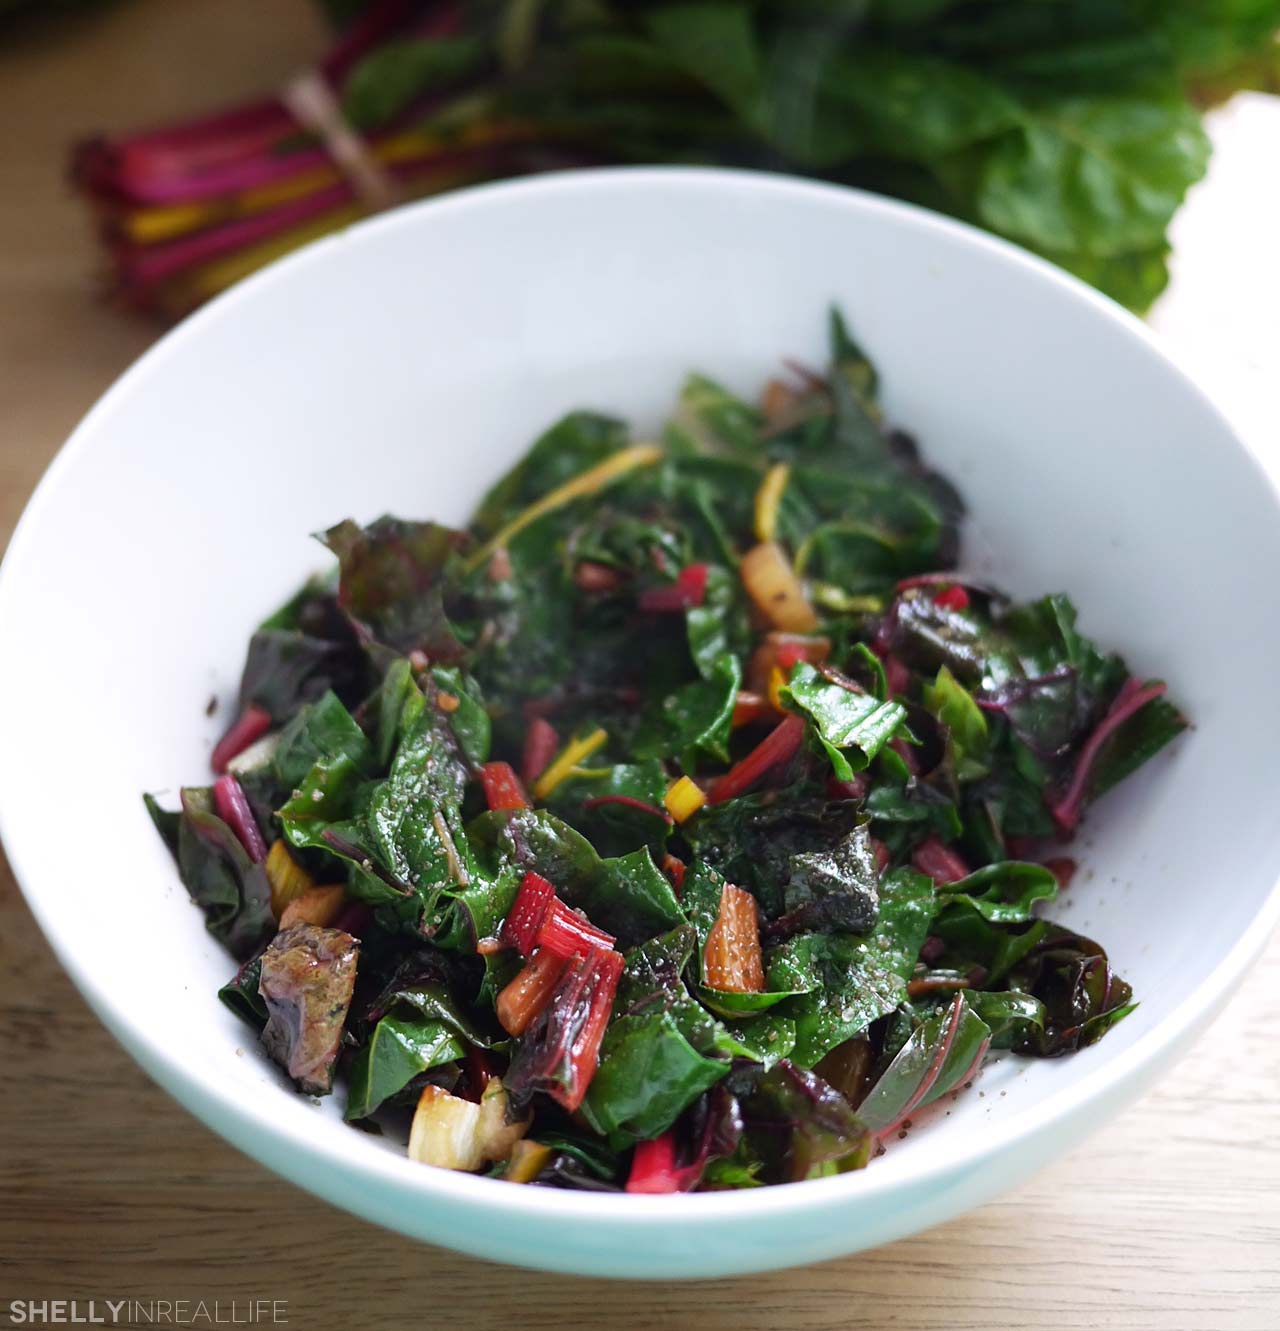 Sauteed Rainbow Chard With Raw Beets And Goat Cheese Recipes ...